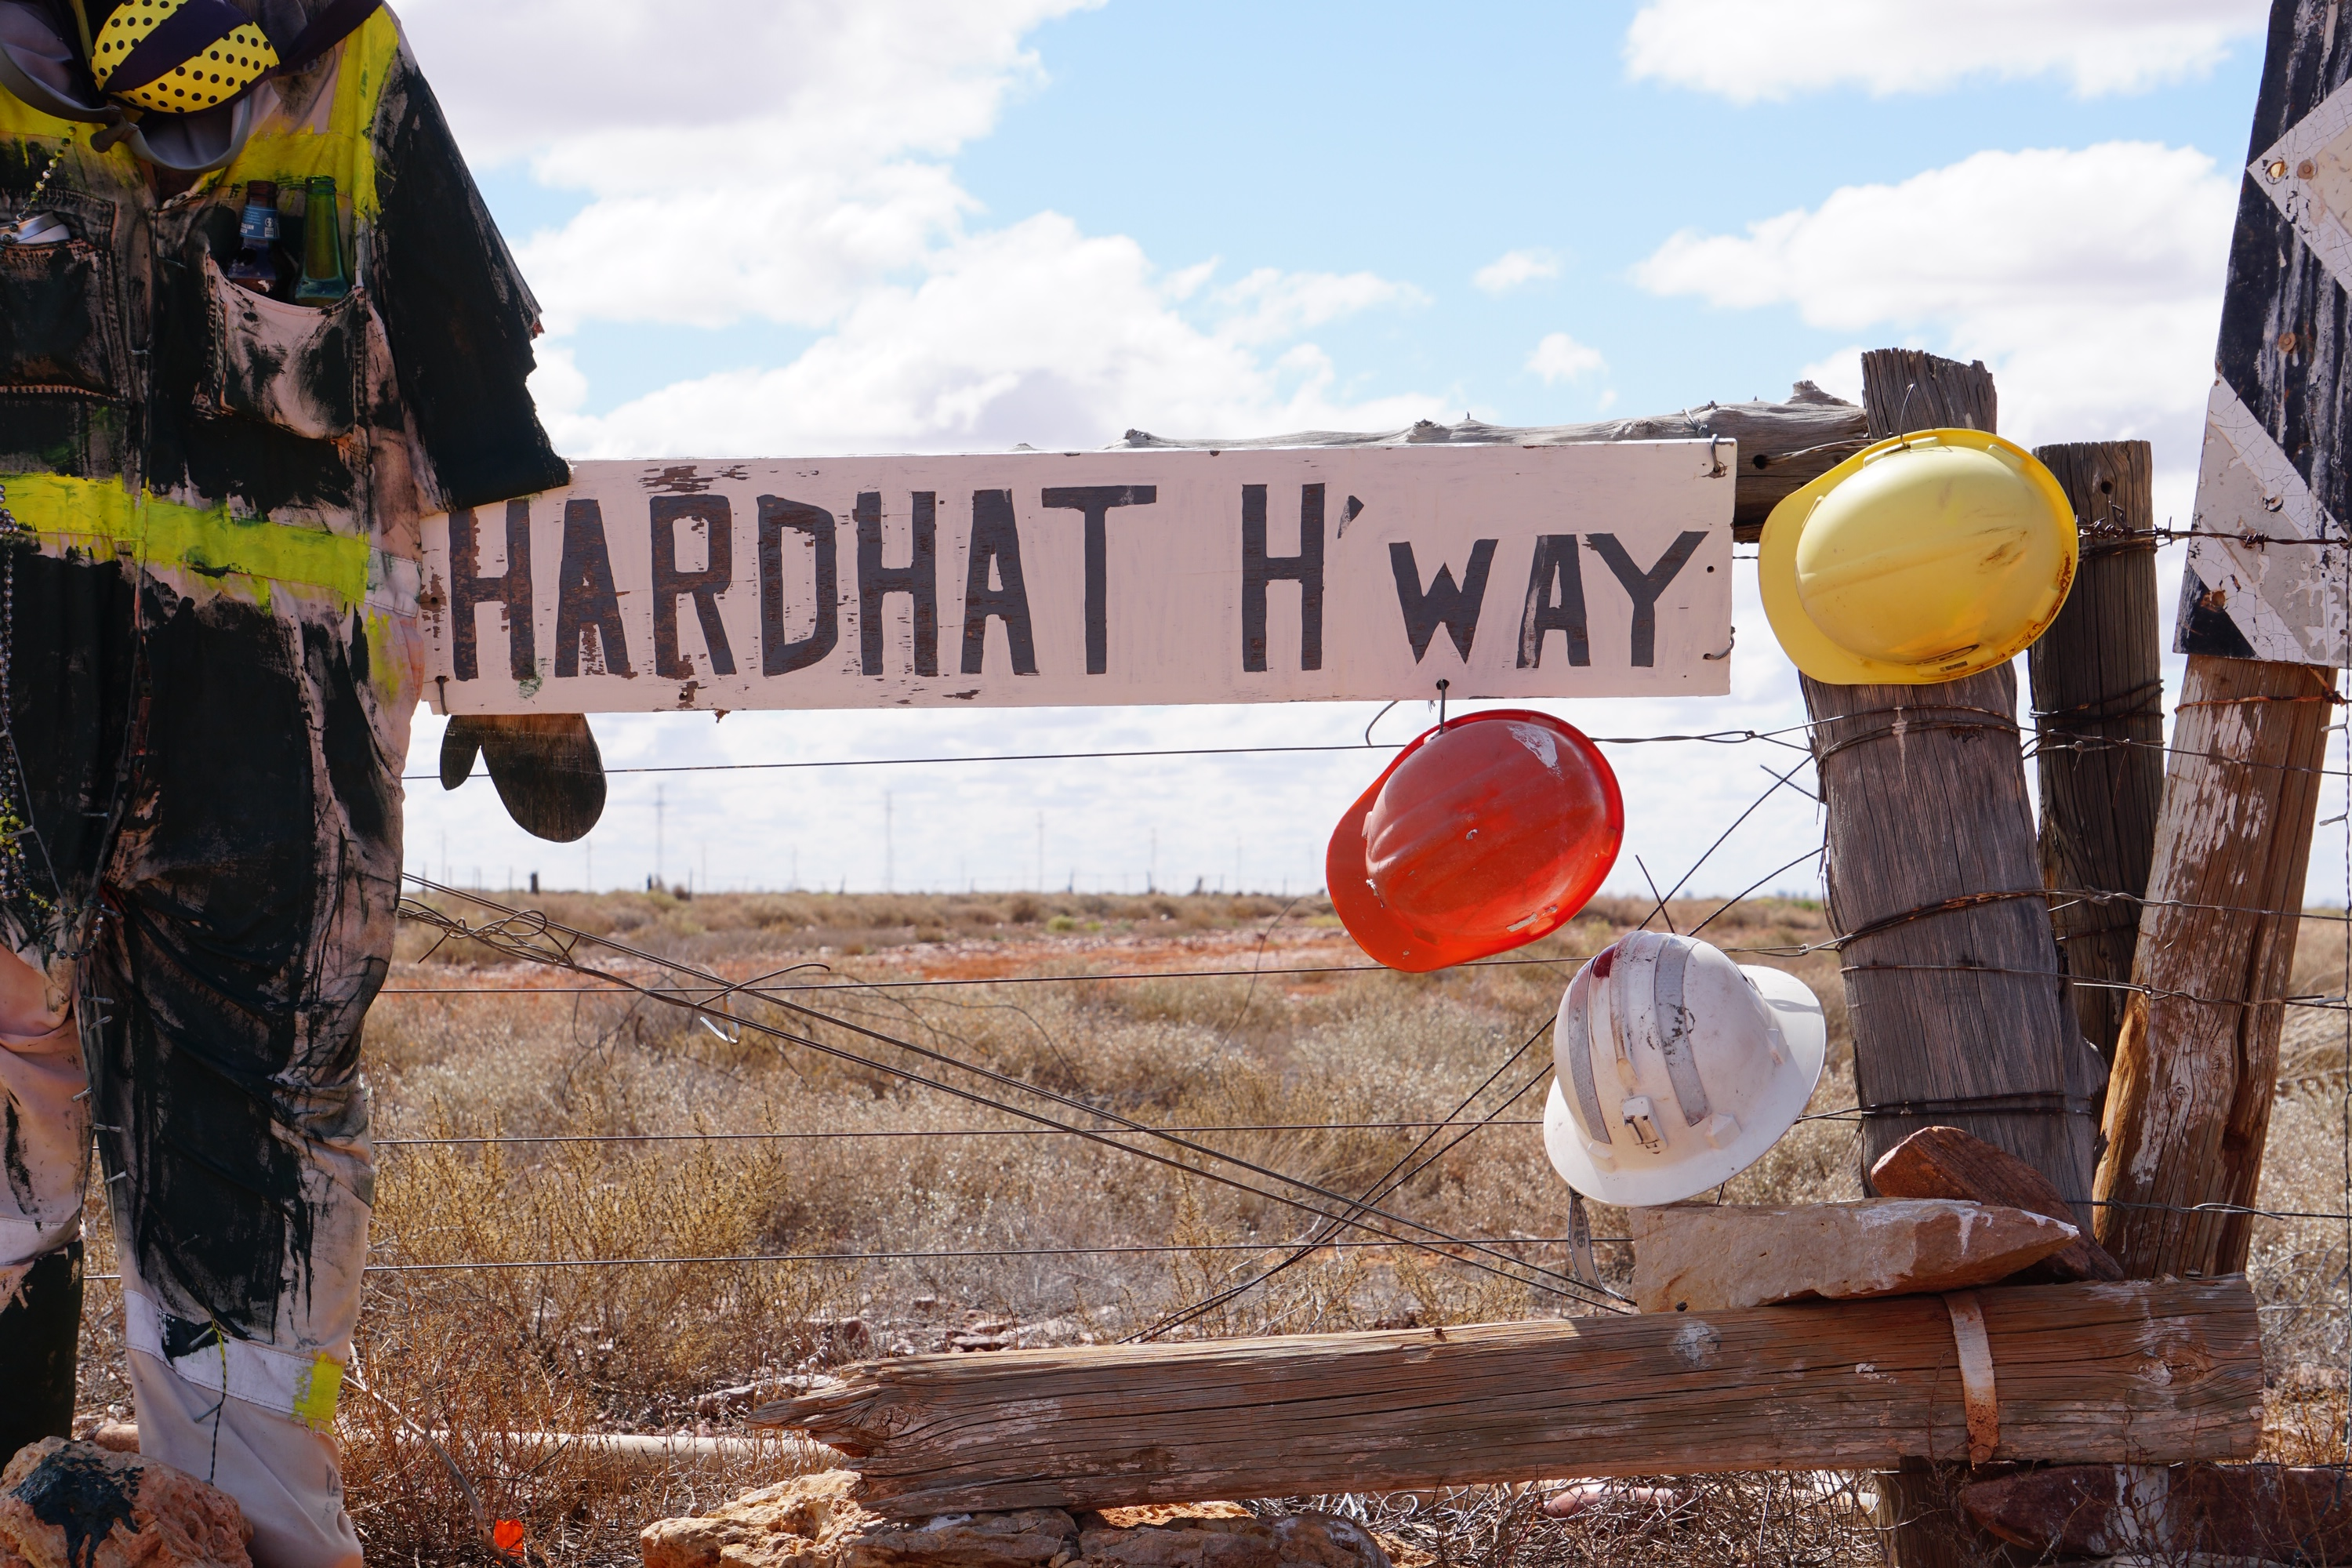 The Olympic 'Hard Hat' Highway links the Stuart Highway to Roxby Downs